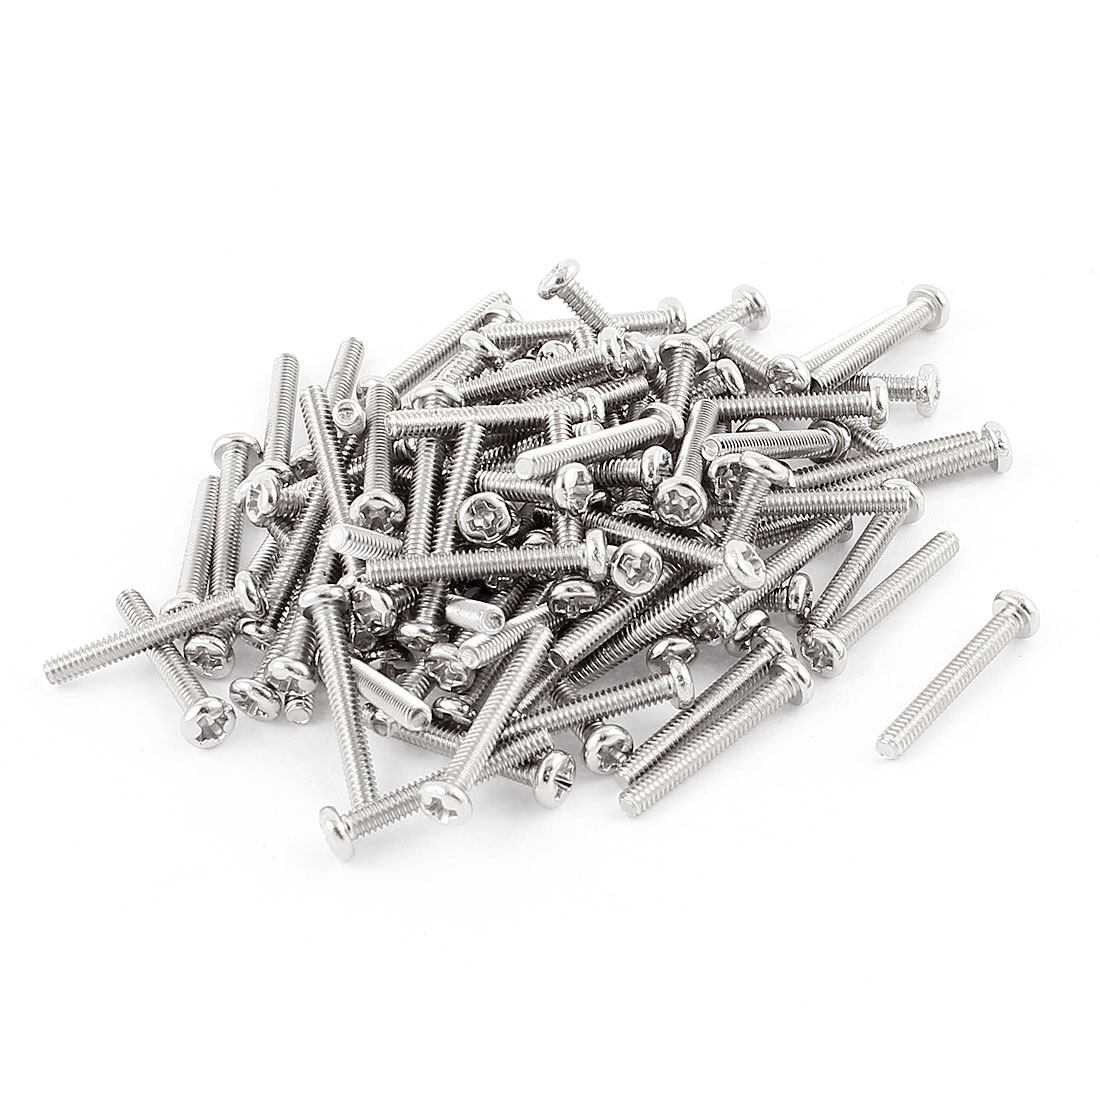 100 Pcs M2x14mm Stainless Steel Round Head Phillips Machine Screws Bolts